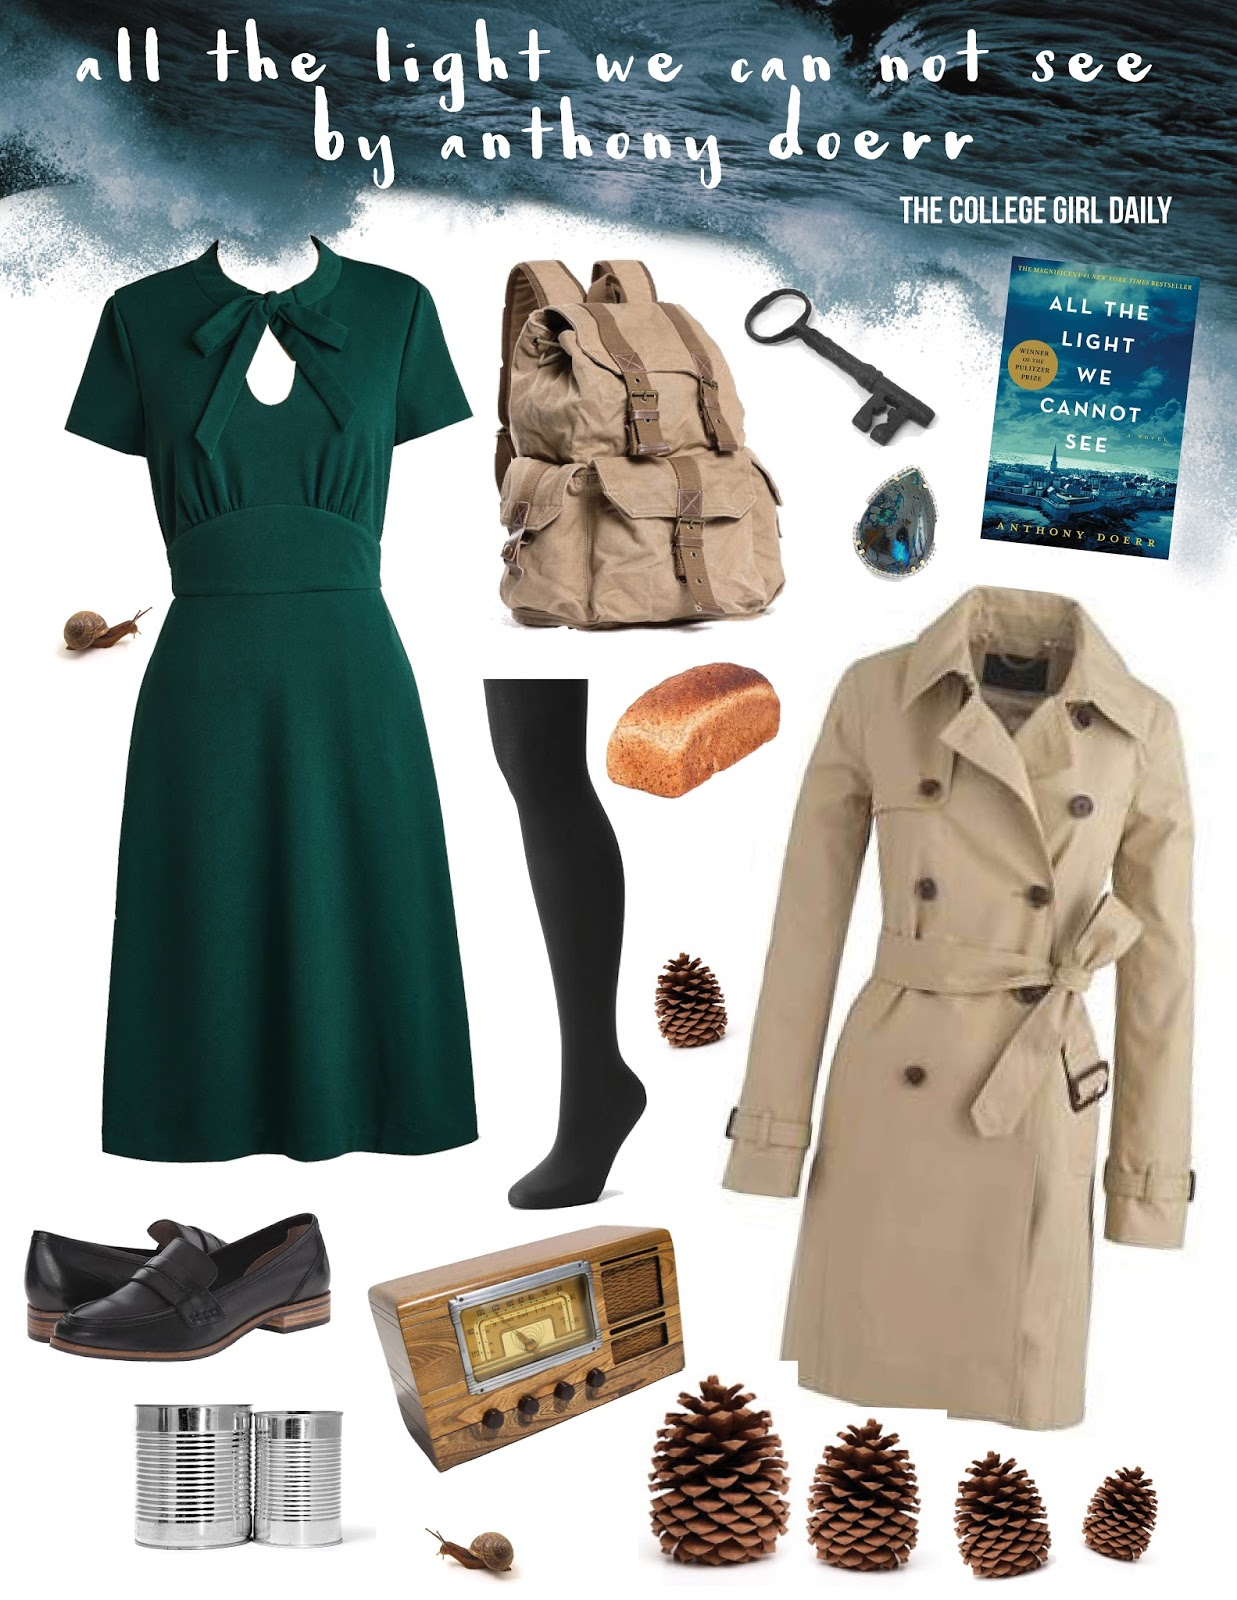 Book Inspired Outfits: All The Light We Cannot See By Anthony Doerr